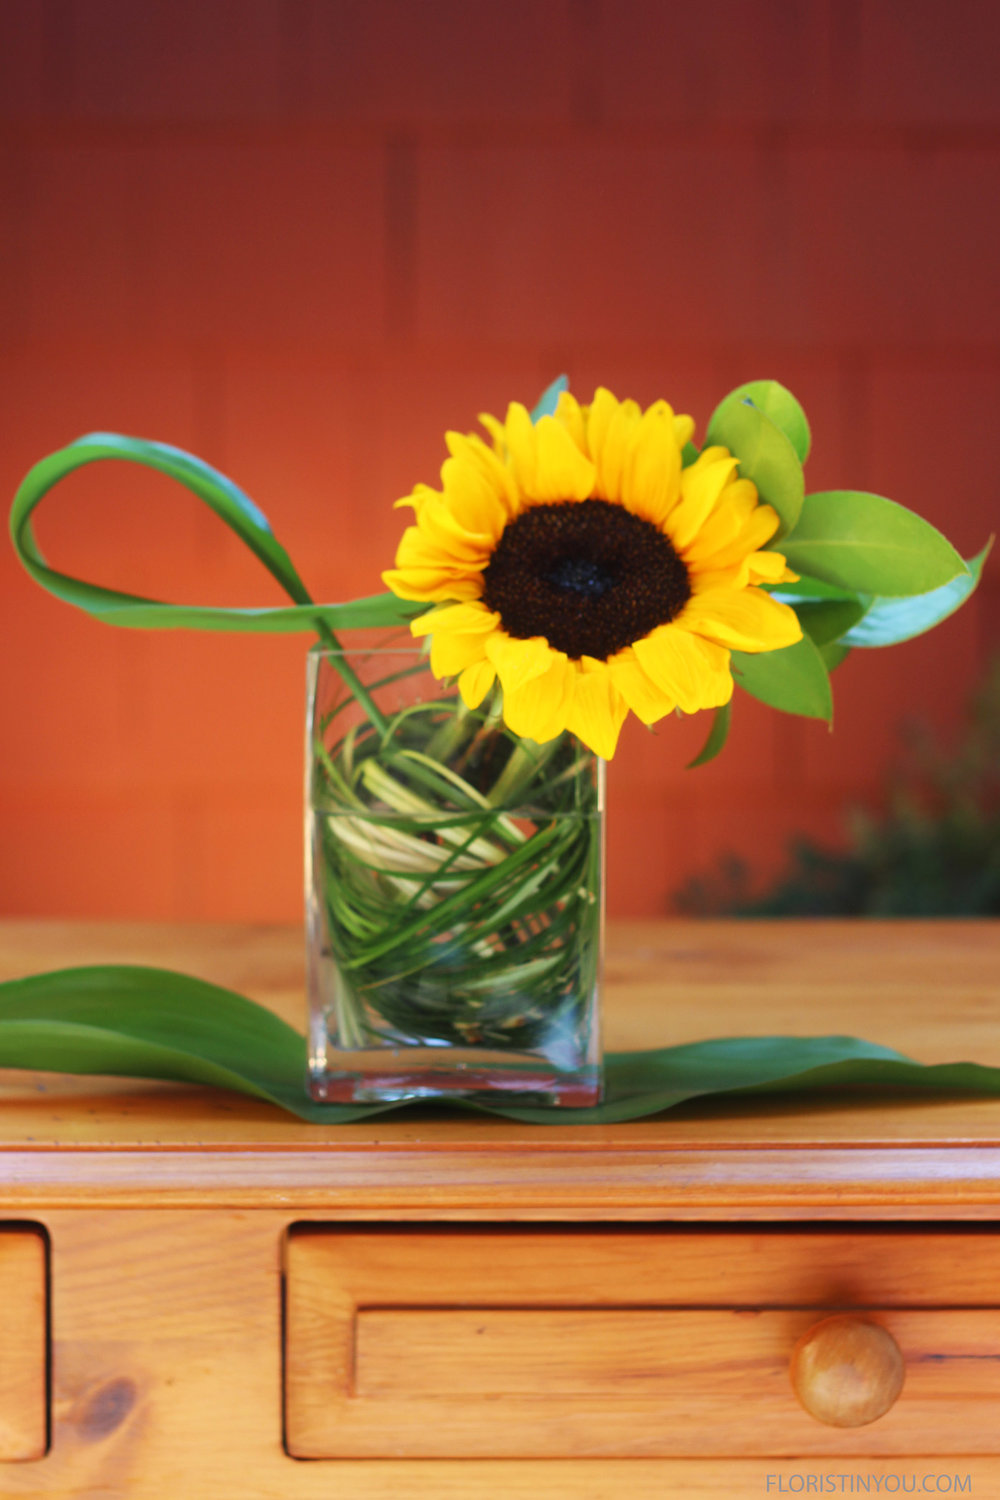 "Sunflowers in a Rectangular Vase                     Normal   0           false   false   false     EN-US   JA   X-NONE                                                                                                                                                                                                                                                                                                                                                                              /* Style Definitions */ table.MsoNormalTable 	{mso-style-name:""Table Normal""; 	mso-tstyle-rowband-size:0; 	mso-tstyle-colband-size:0; 	mso-style-noshow:yes; 	mso-style-priority:99; 	mso-style-parent:""""; 	mso-padding-alt:0in 5.4pt 0in 5.4pt; 	mso-para-margin:0in; 	mso-para-margin-bottom:.0001pt; 	mso-pagination:widow-orphan; 	font-size:12.0pt; 	font-family:Cambria; 	mso-ascii-font-family:Cambria; 	mso-ascii-theme-font:minor-latin; 	mso-hansi-font-family:Cambria; 	mso-hansi-theme-font:minor-latin;}"